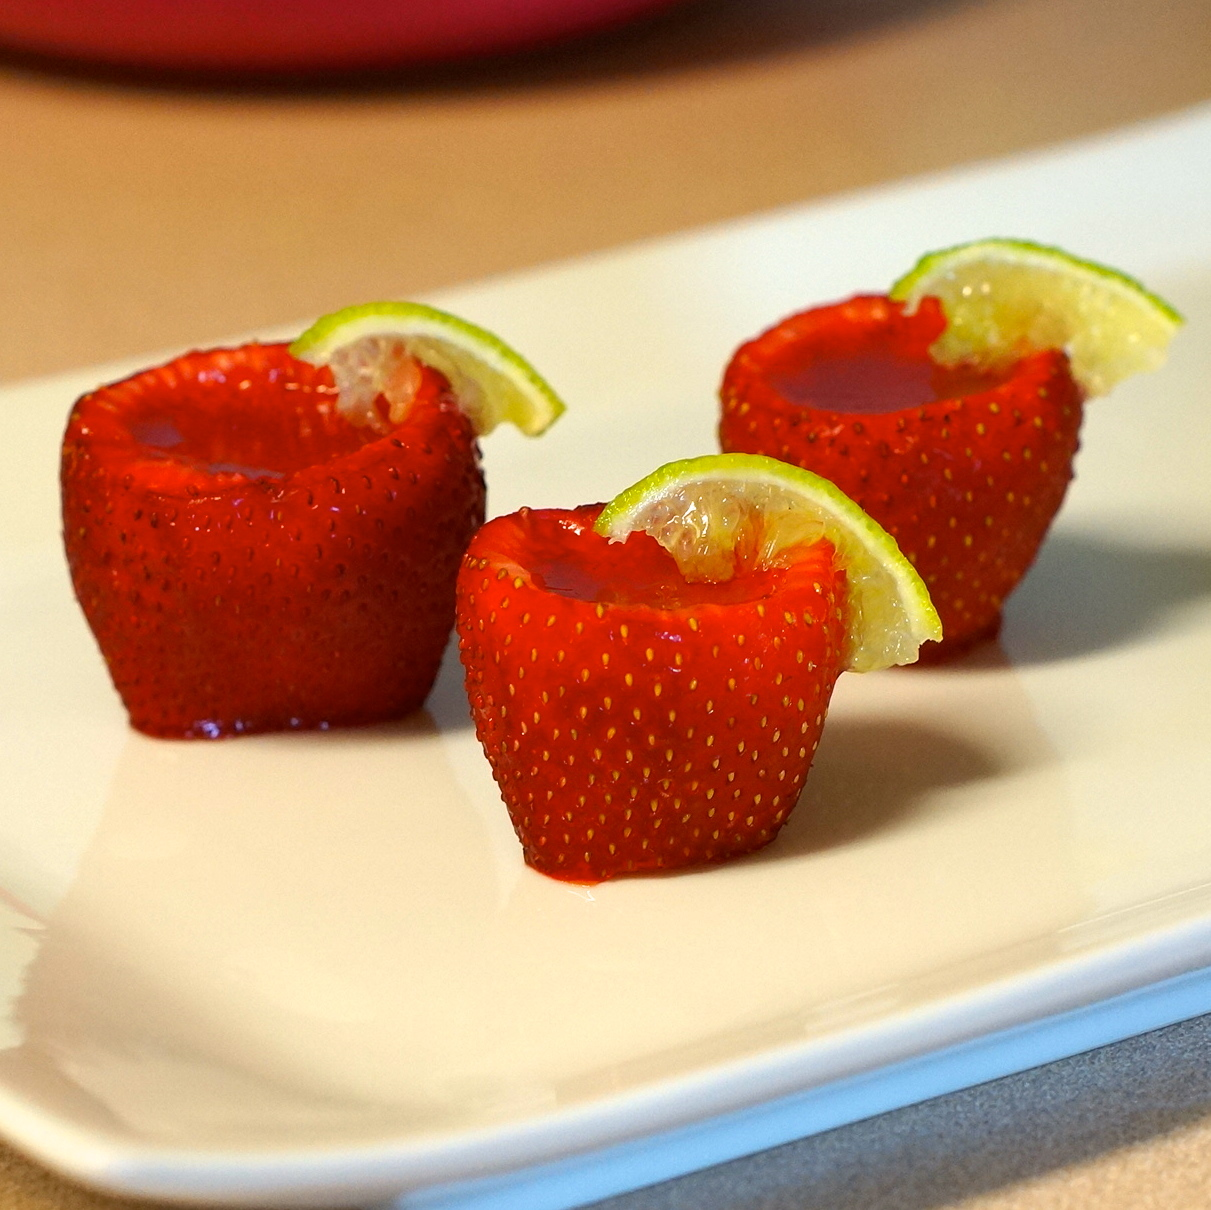 Jello shots with fruit inside - Jello Shots With Fruit Inside 58